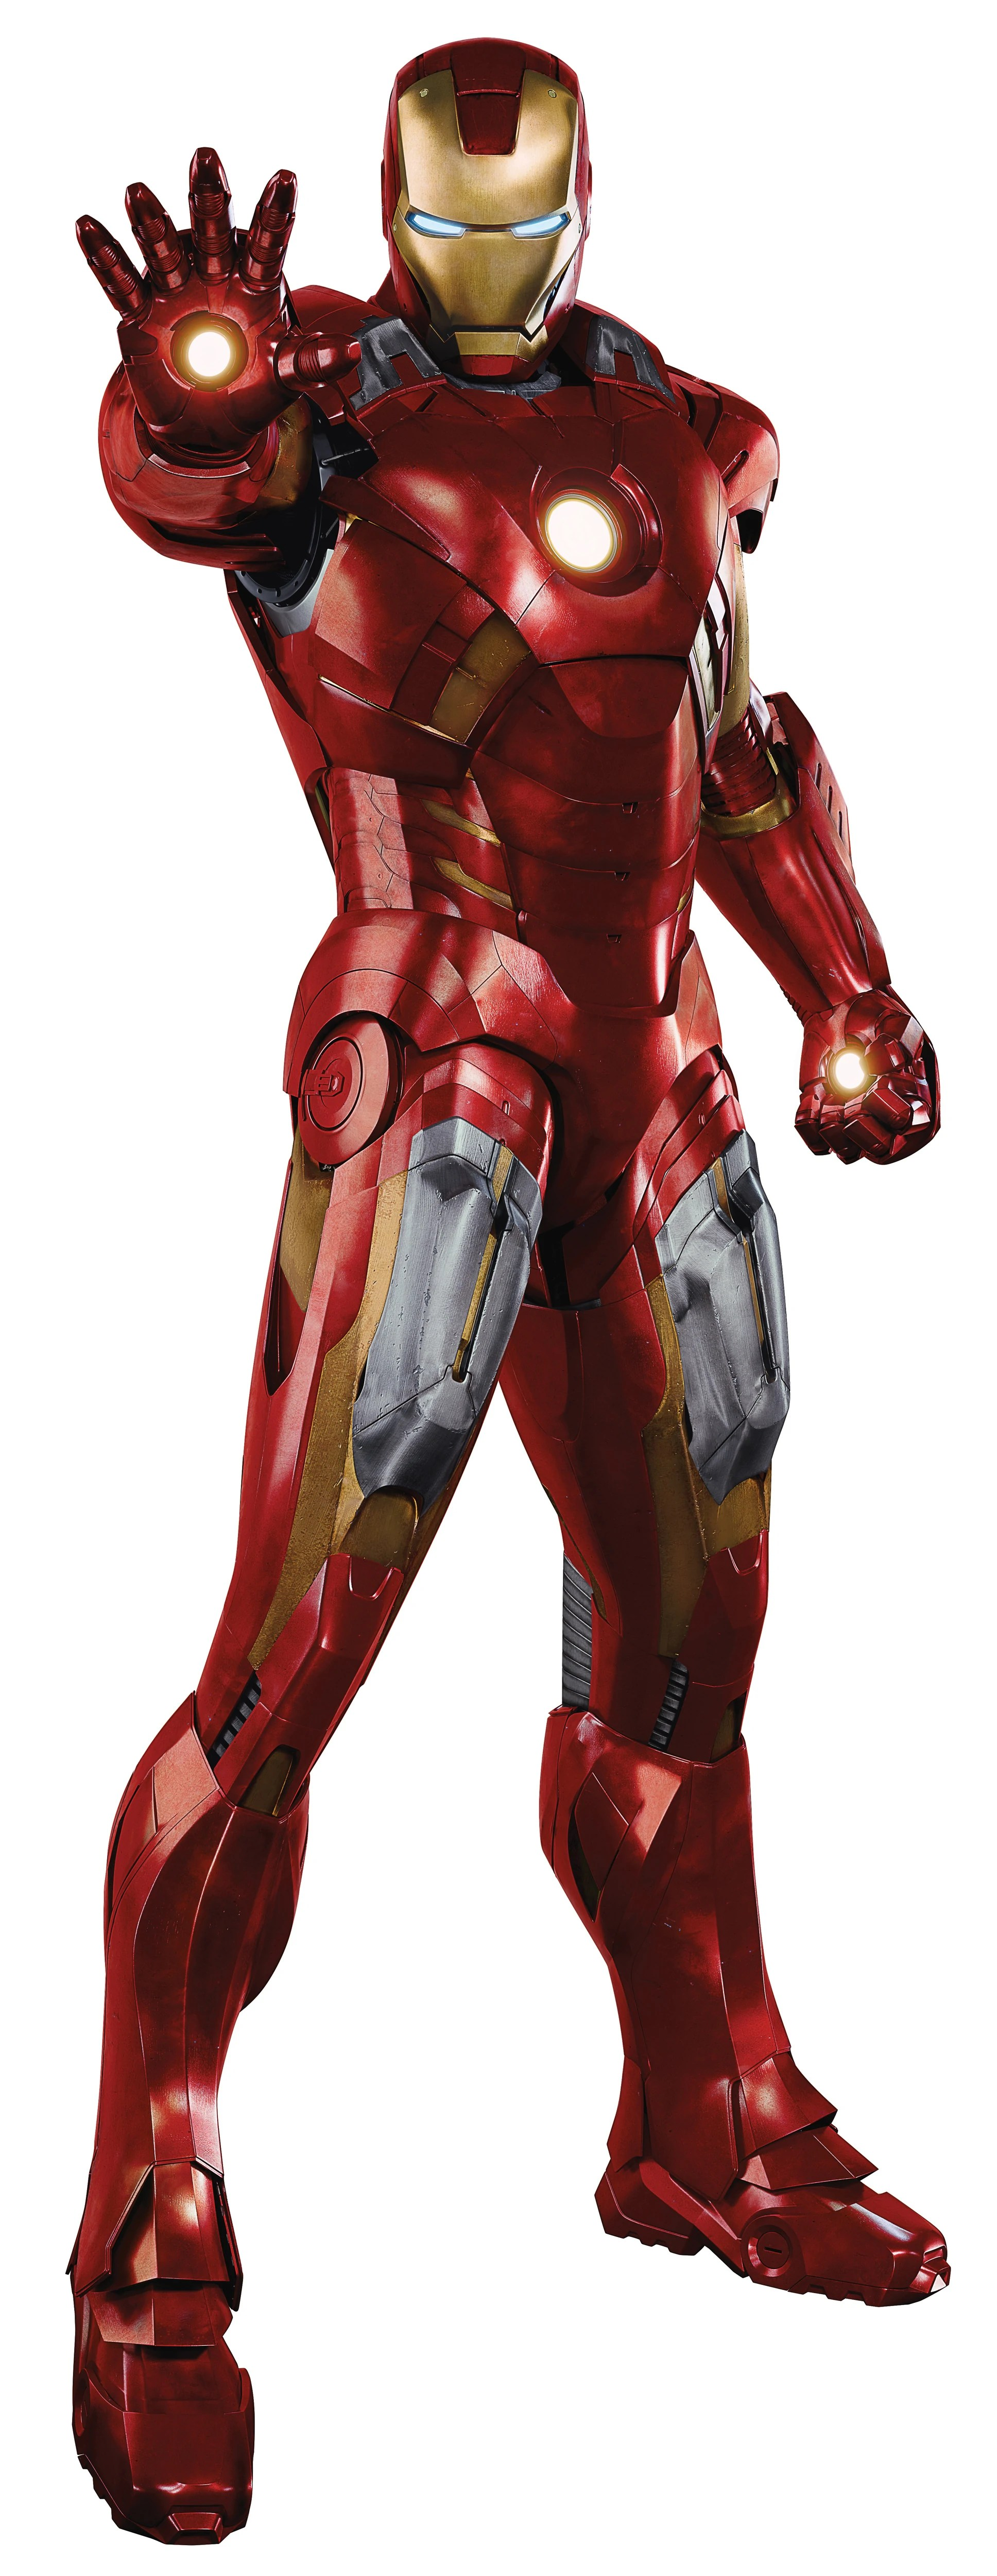 Iron Man armor (Mark VII) | Marvel Movies | FANDOM powered by Wikia